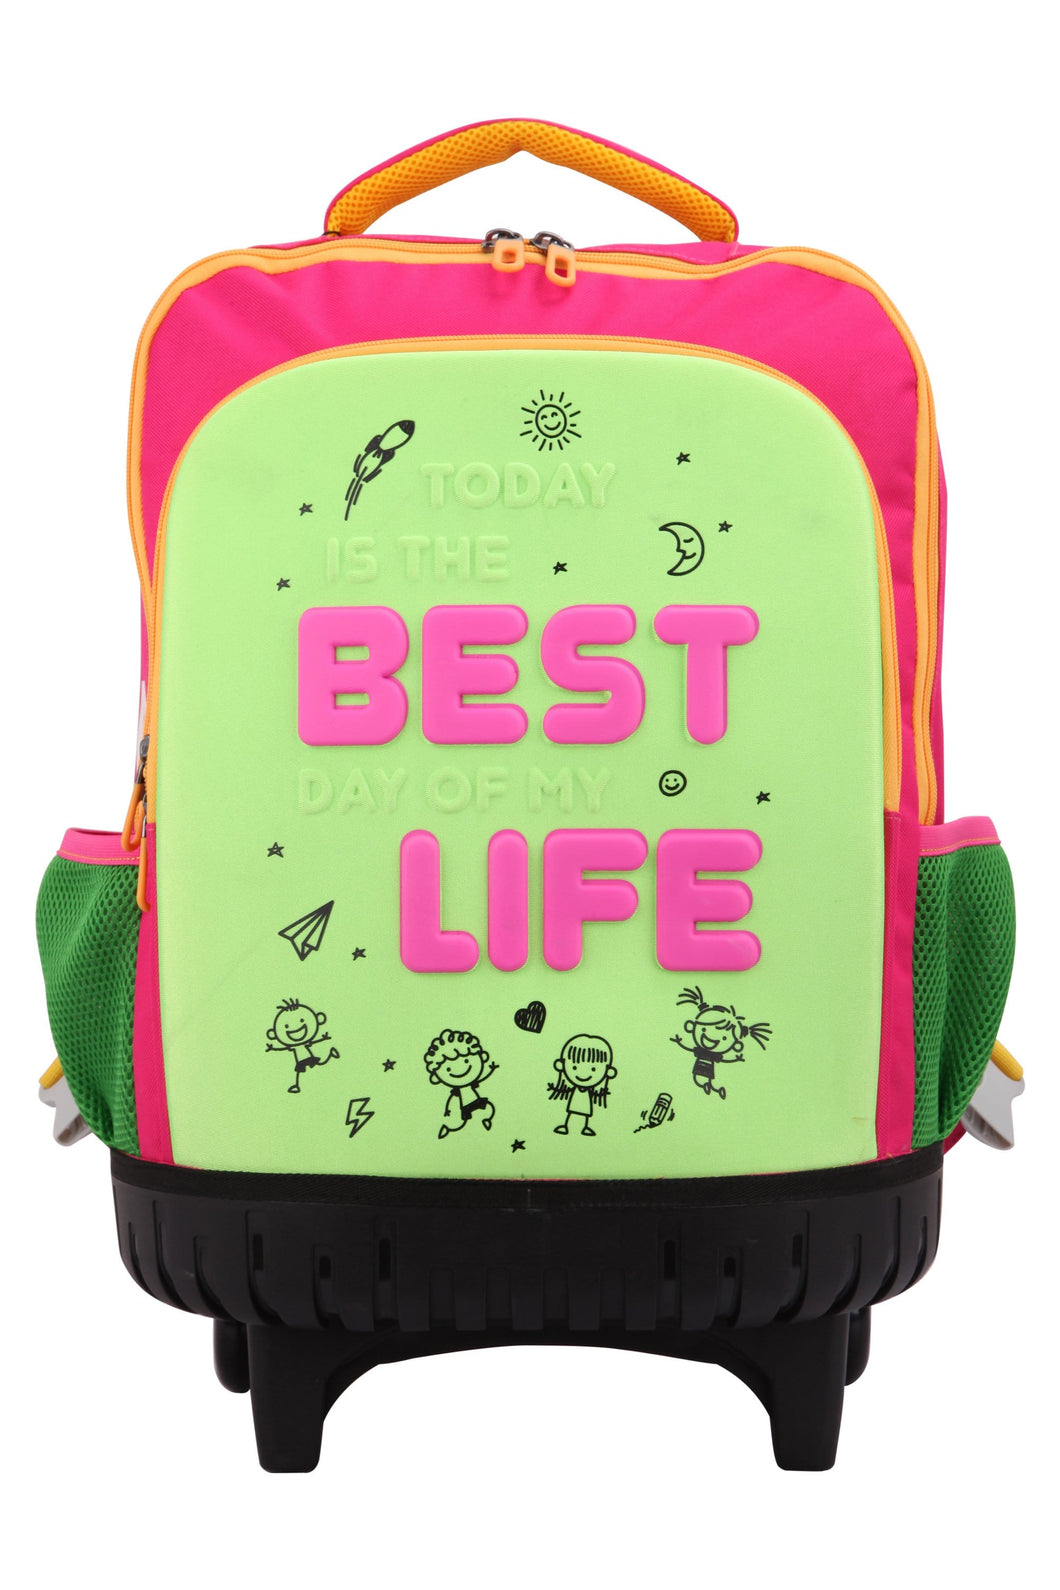 Bestlife Pop Wheeled Backpack - Pink - Luggage City